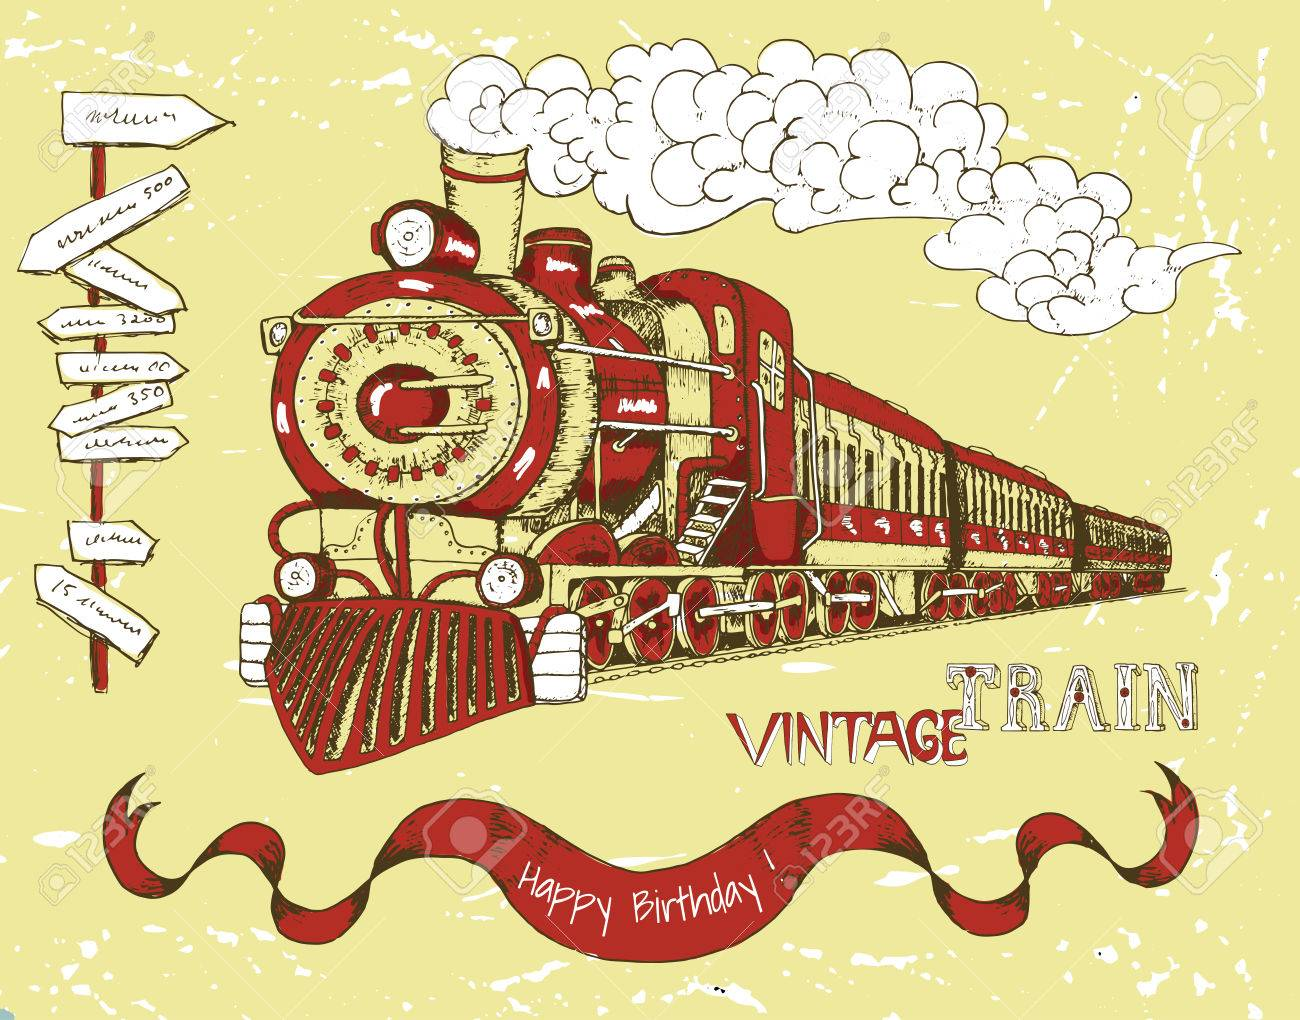 Retro happy birthday card with old red train banner and text retro happy birthday card with old red train banner and text on yellow background bookmarktalkfo Image collections